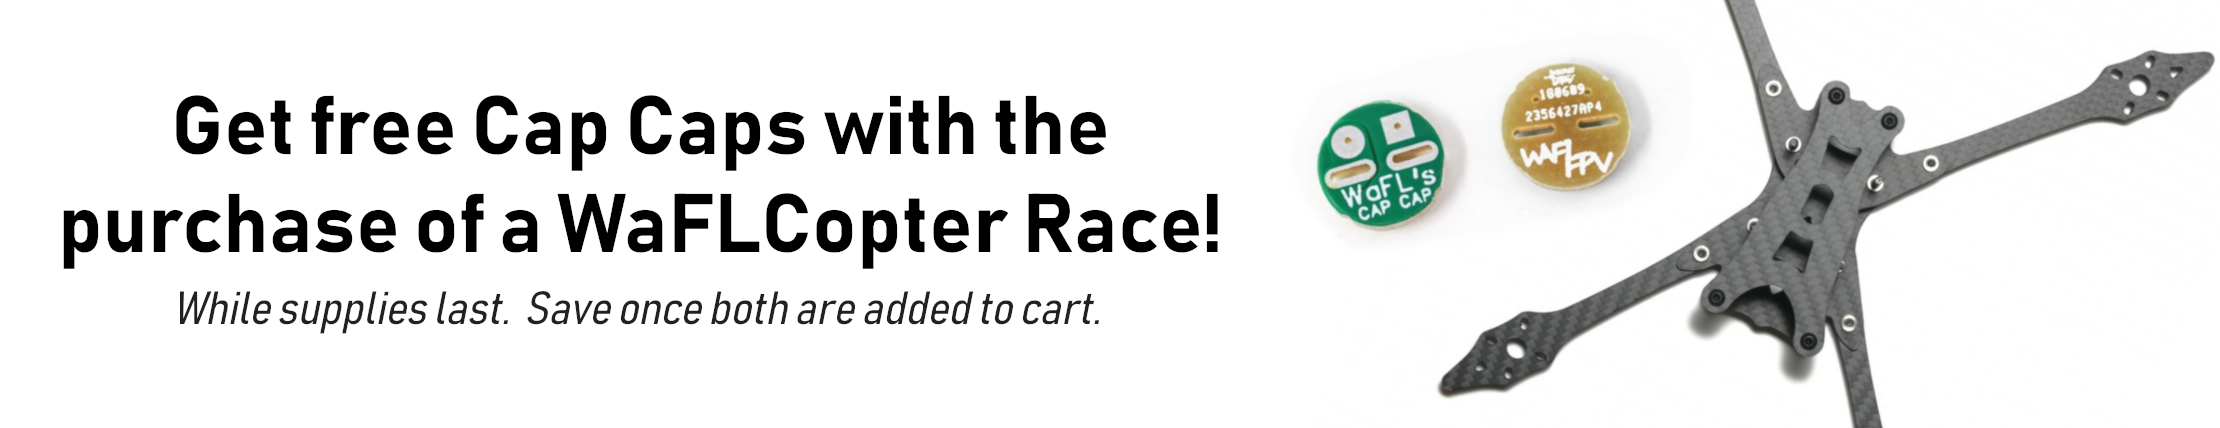 Get free cap caps with the purchase of a WaFLCopter Race!